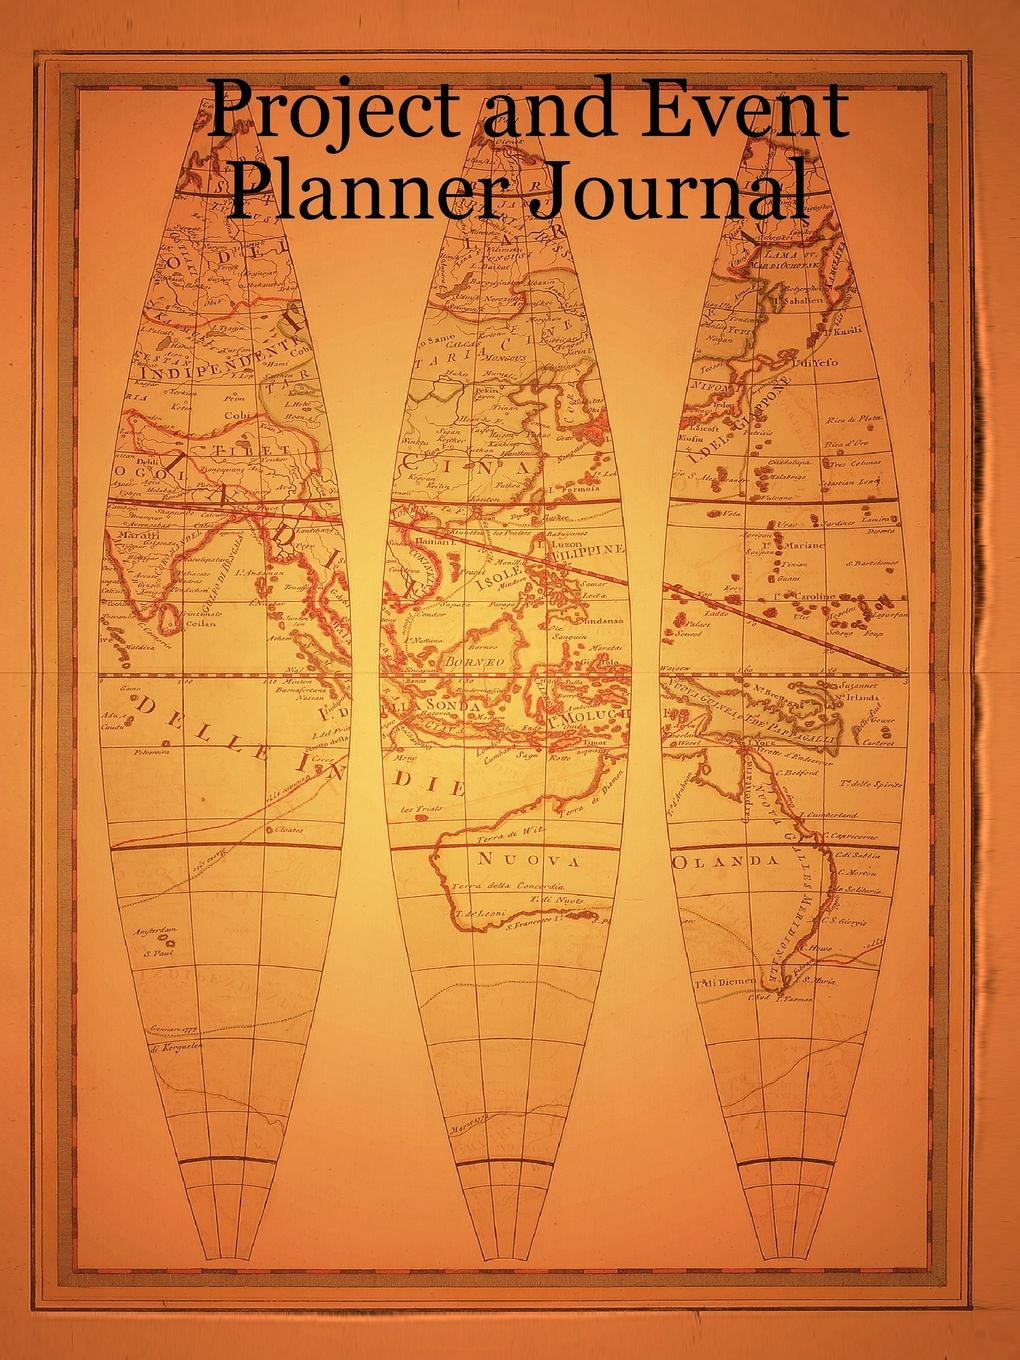 Angela Williams Project and Event Planner Journal kaylee berry lifestyle blog planner journal lifestyle blogging content planner never run out of things to blog about again